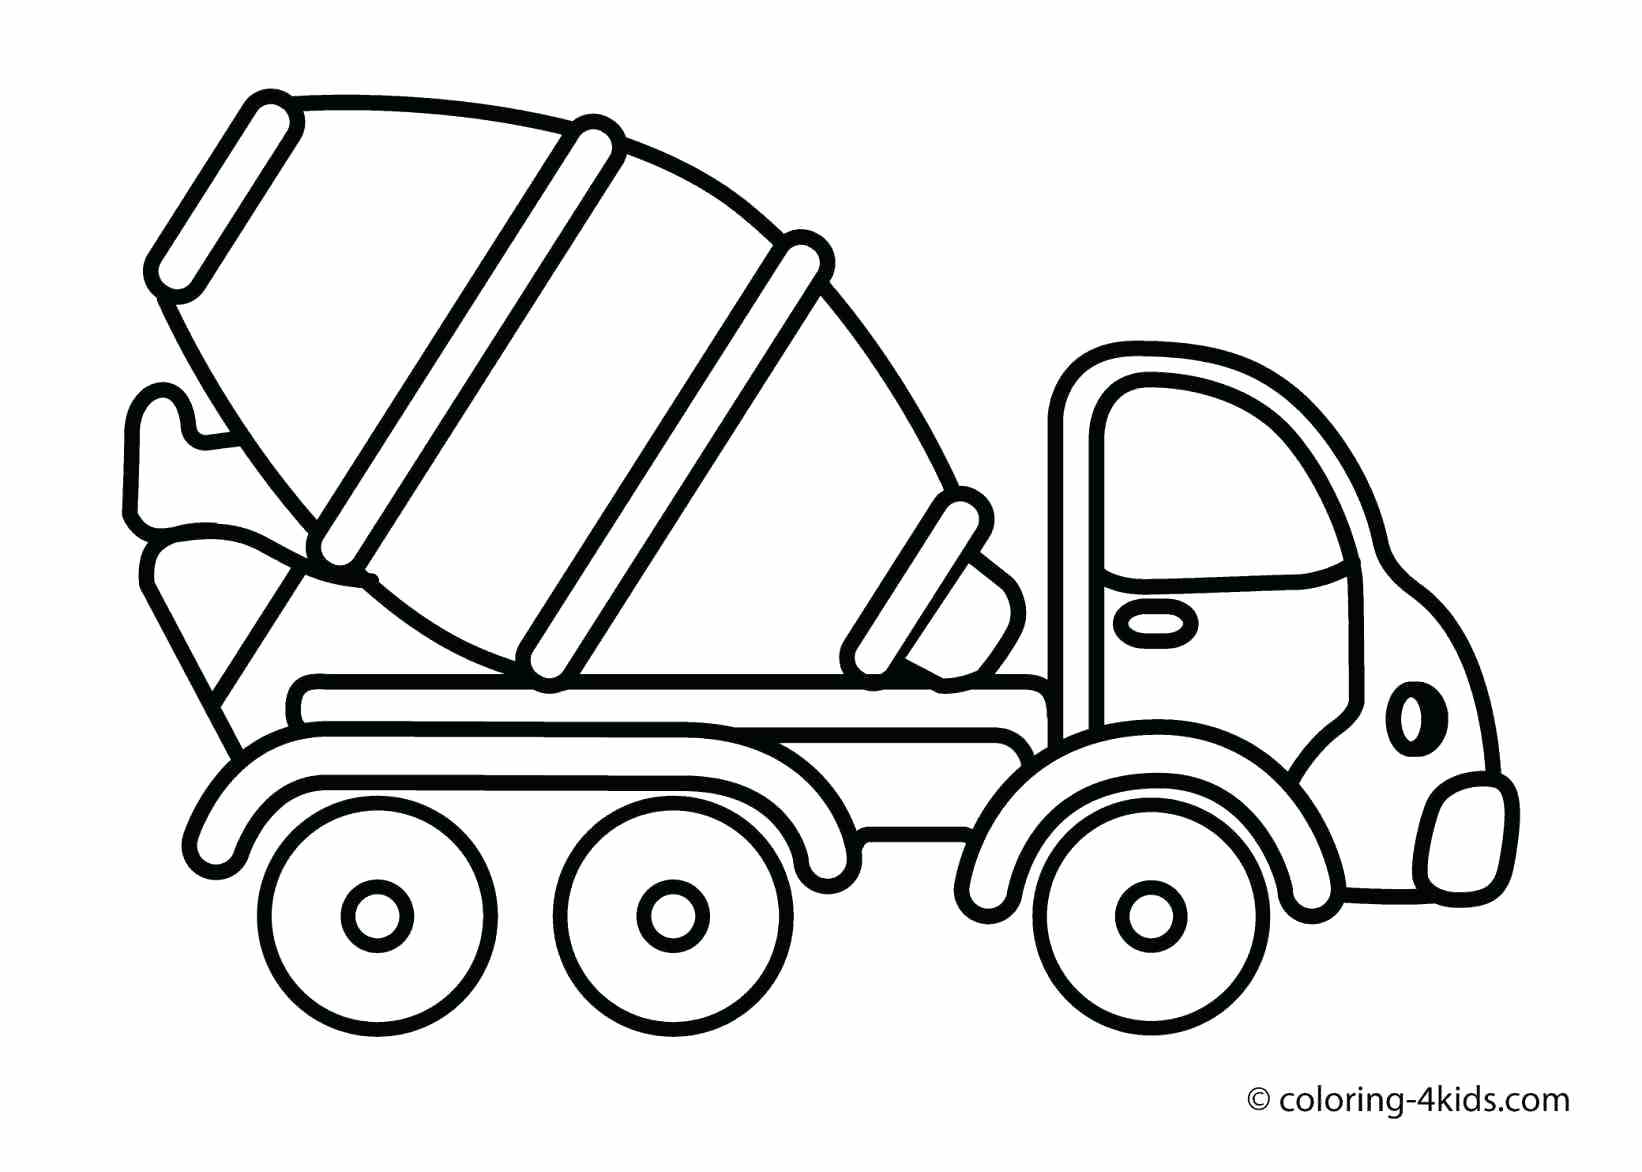 1642x1172 Coloring Grave Digger Coloring Pages